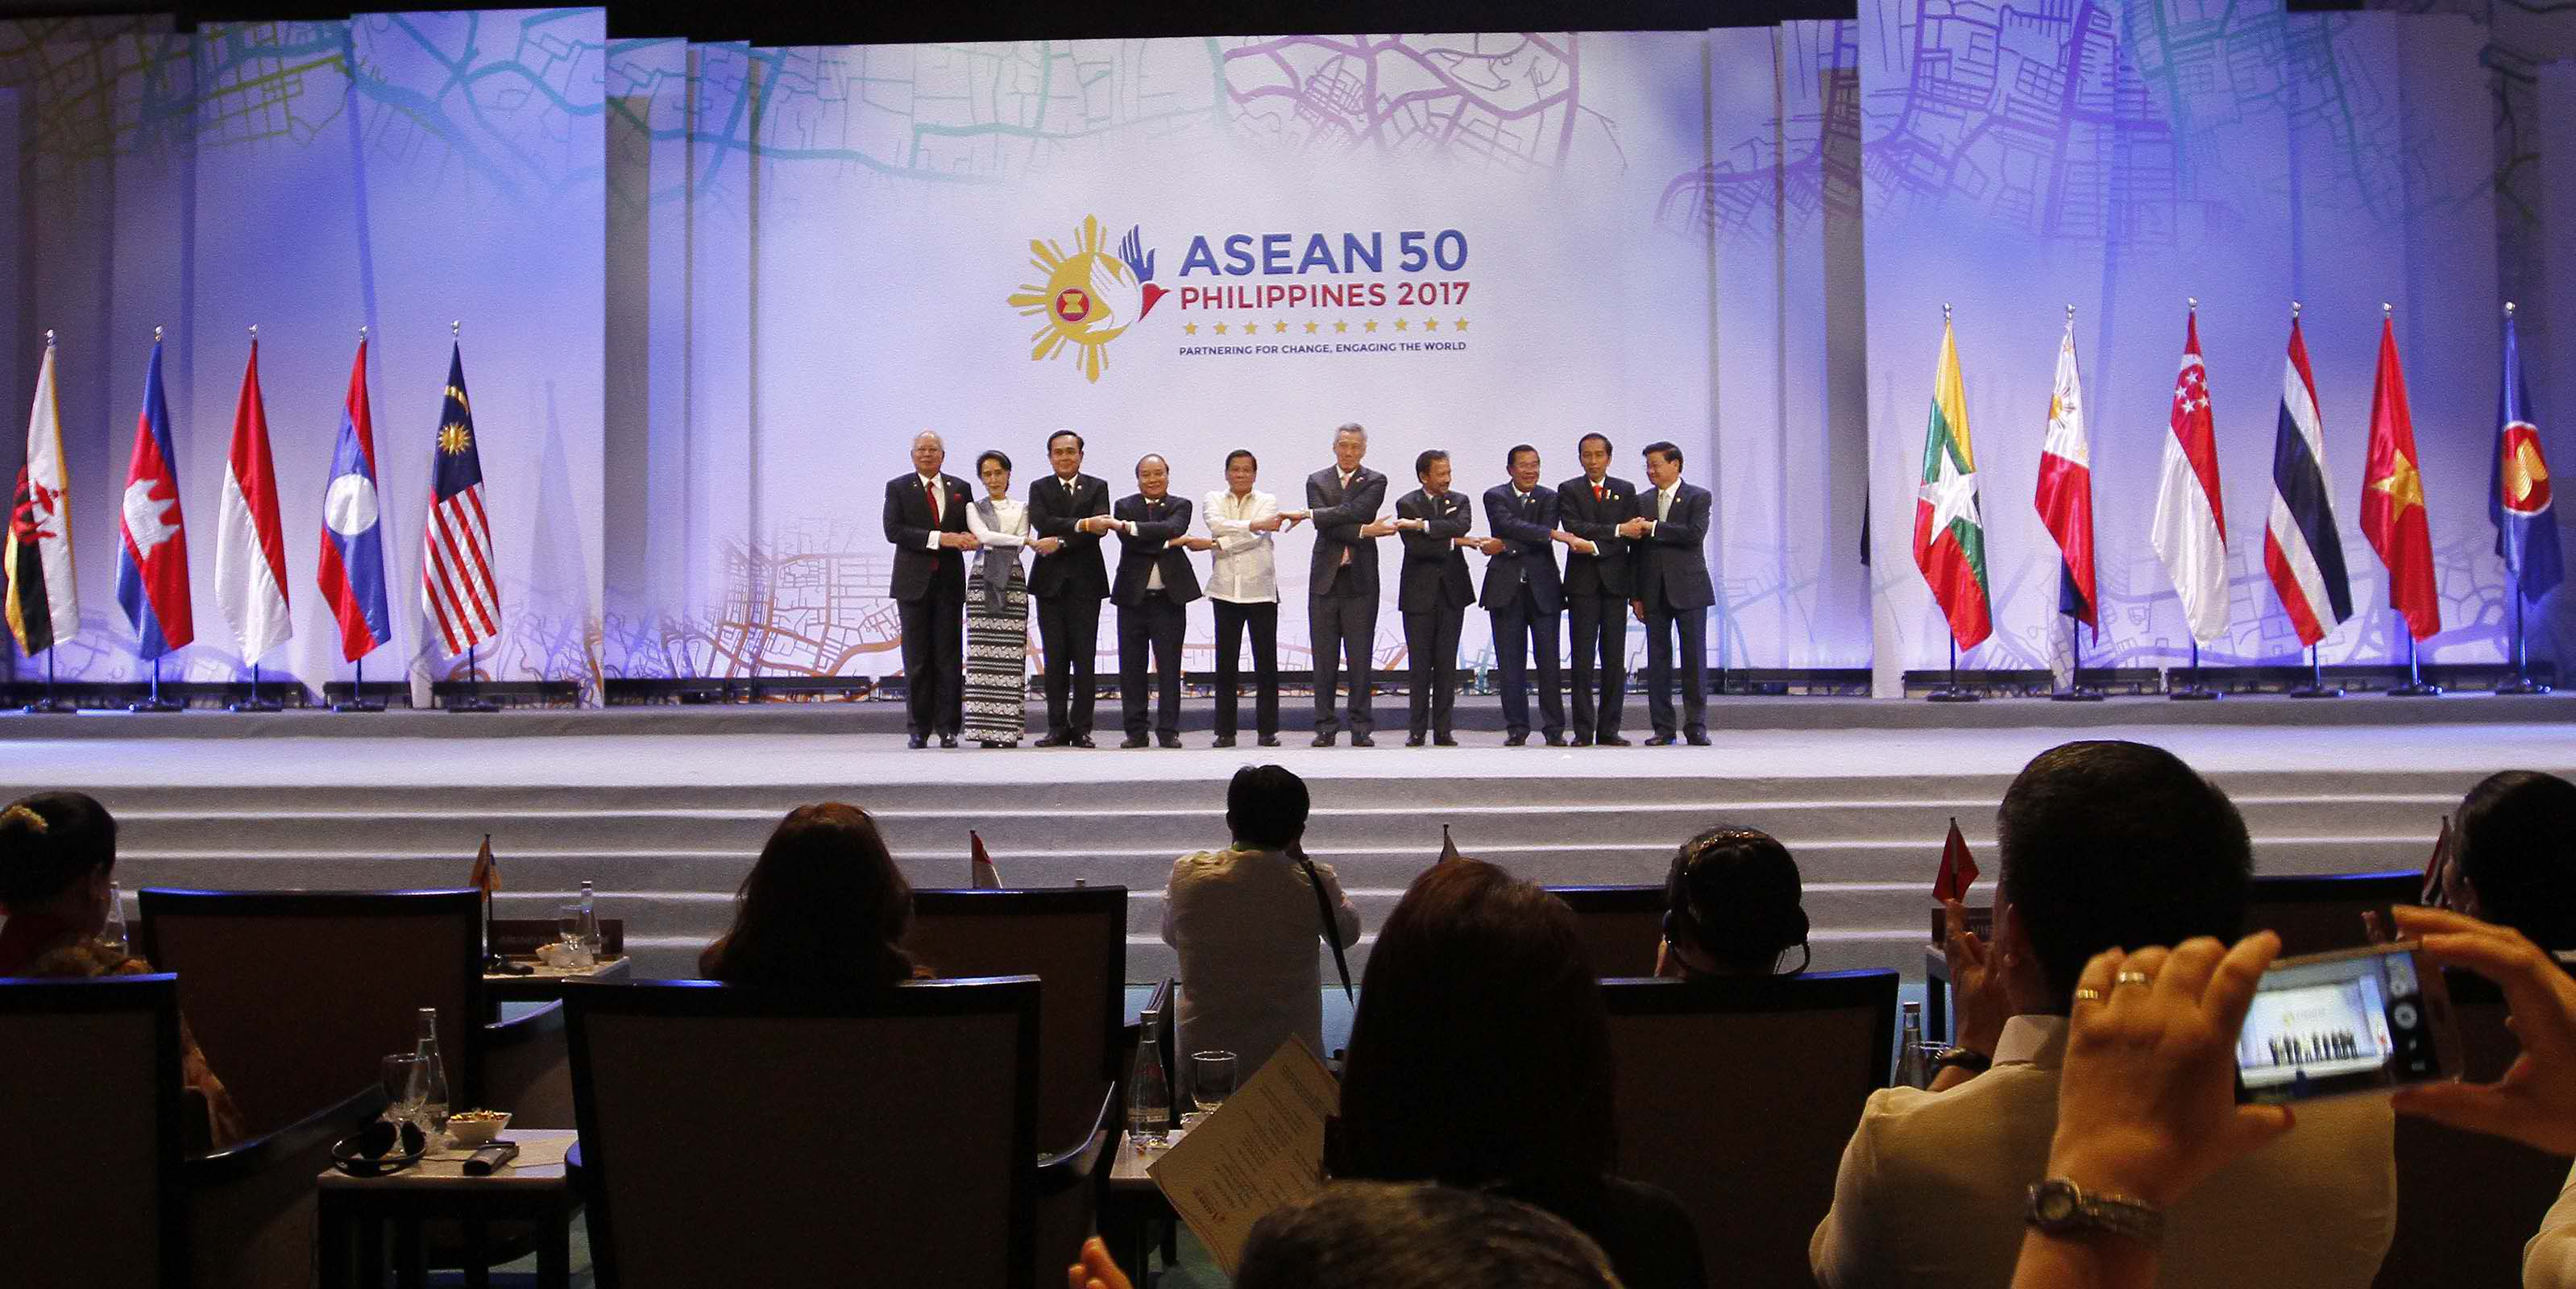 ASEAN leaders later attended the ASEAN Summit's retreat and dialogues with the ASEAN Inter-Parliamentary Assembly (AIPA) and ASEAN Youth. (Photo: Avito C. Dalan/ Philippine News Agency)